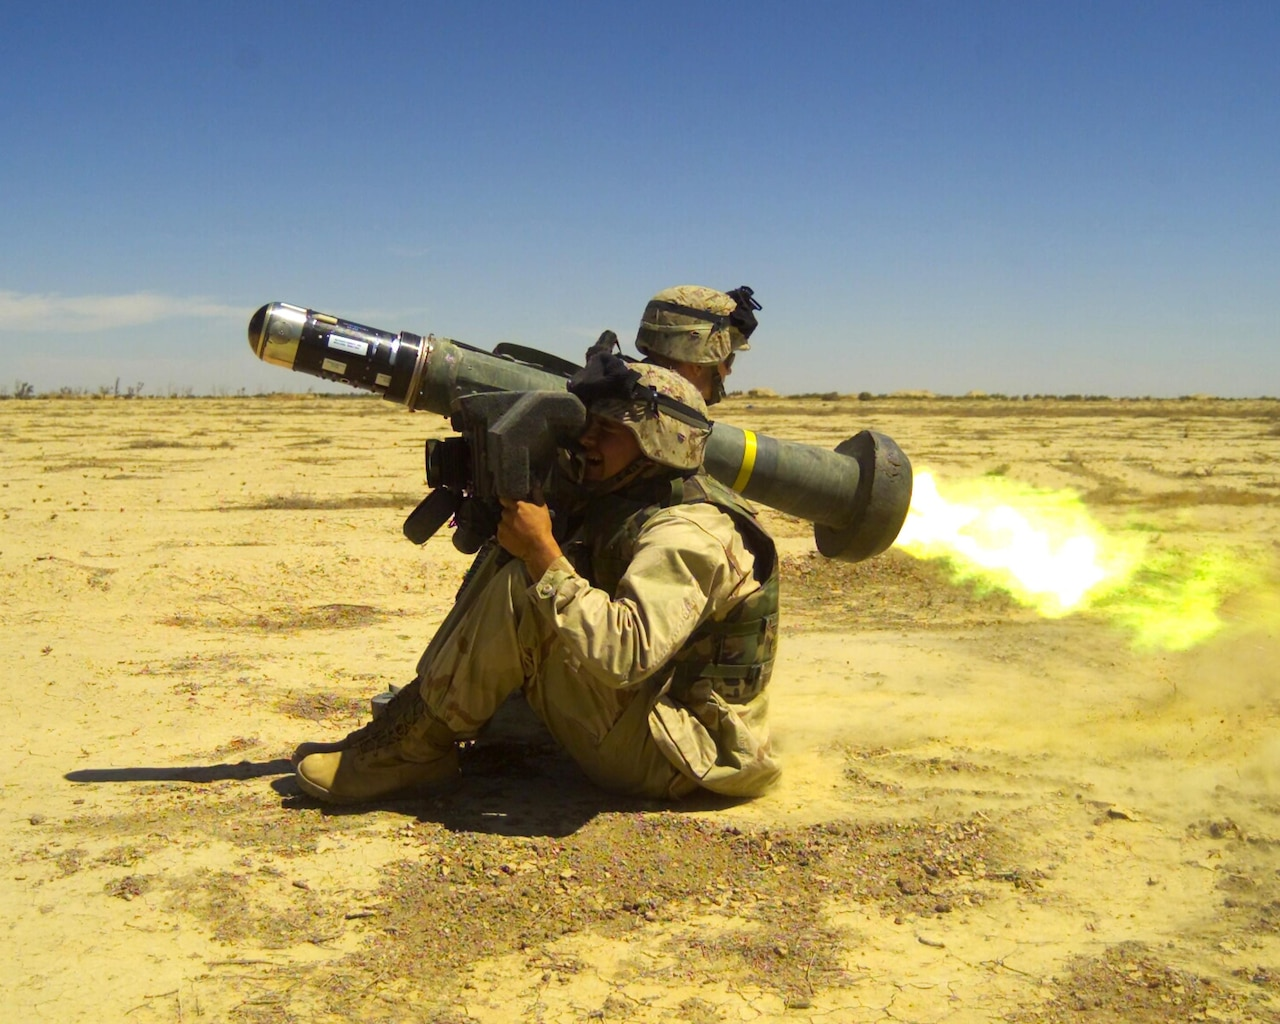 Beginning in the 1970s, the Defense Advanced Research Projects Agency began the Tank Breaker program in response to deficiencies identified by the Army and Marine Corps in their existing infantry anti-tank weapon. The Army later renamed the weapon Javelin, which entered full-scale production in 1997. It was the world's first medium-range, one-man-portable, fire-and-forget anti-tank weapon system. Here, a soldier fires an FGM-148 Javelin anti-tank weapon, May 2, 2003. Marine Corps photo by Sgt. Mauricio Campino